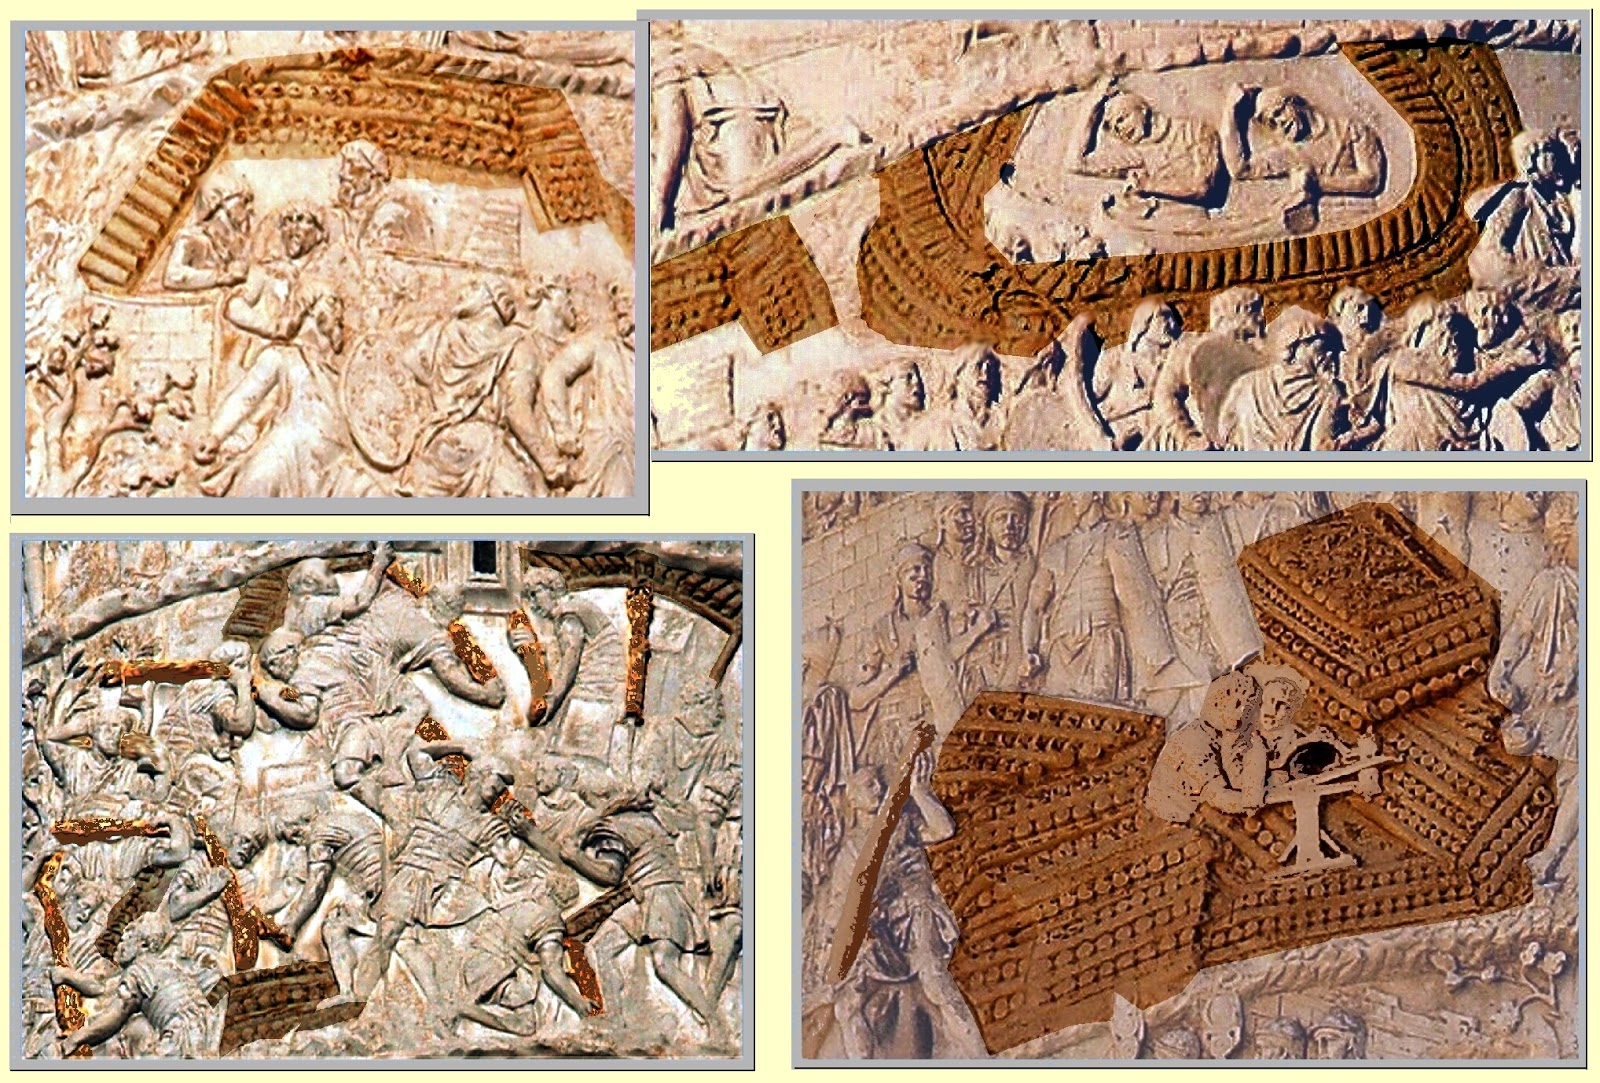 Cosmic archeology and archaeologists 21